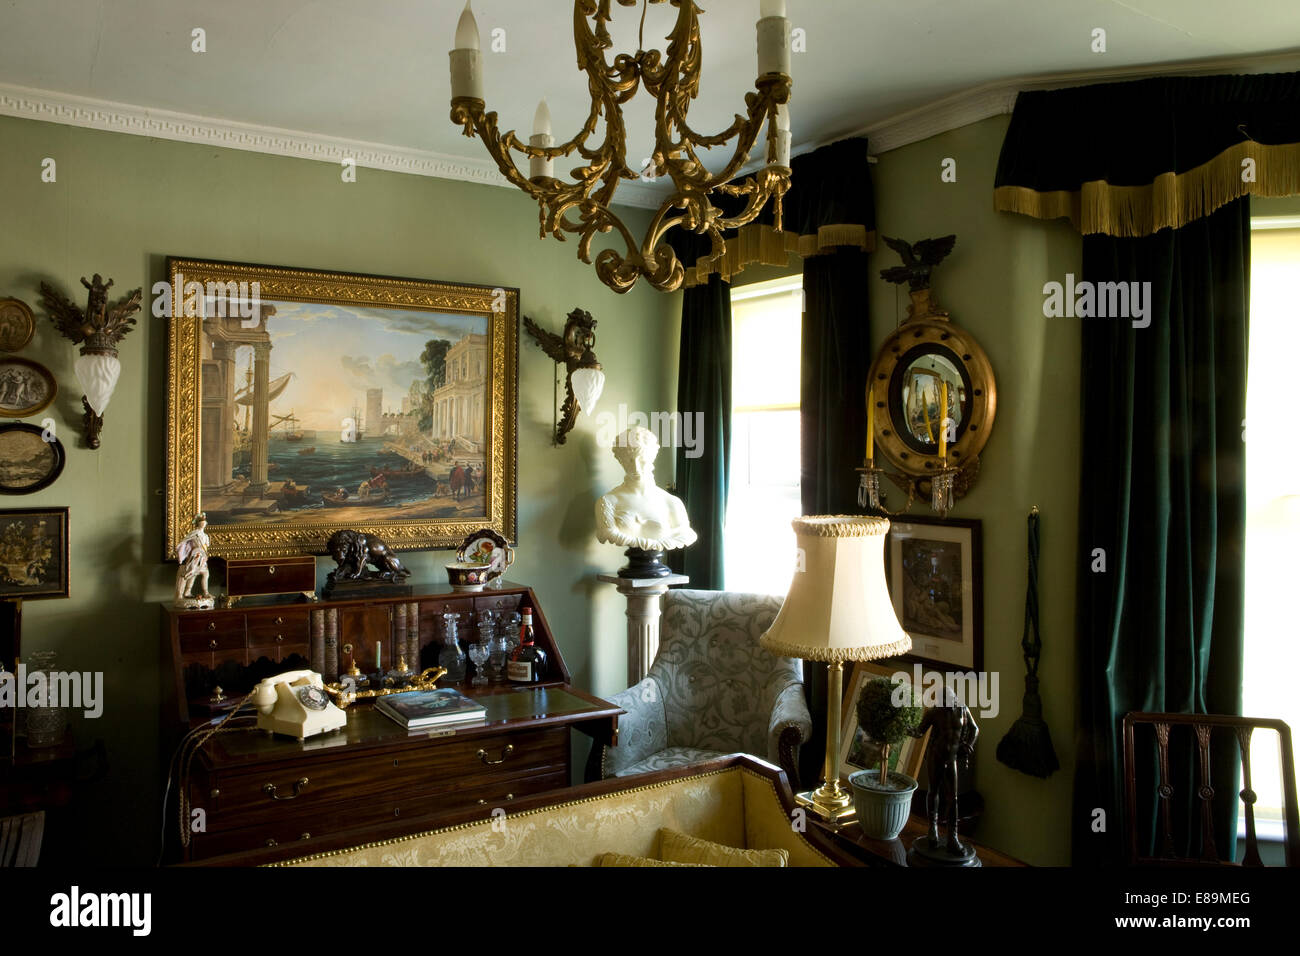 Large oil painting above antique bureau in green drawing room